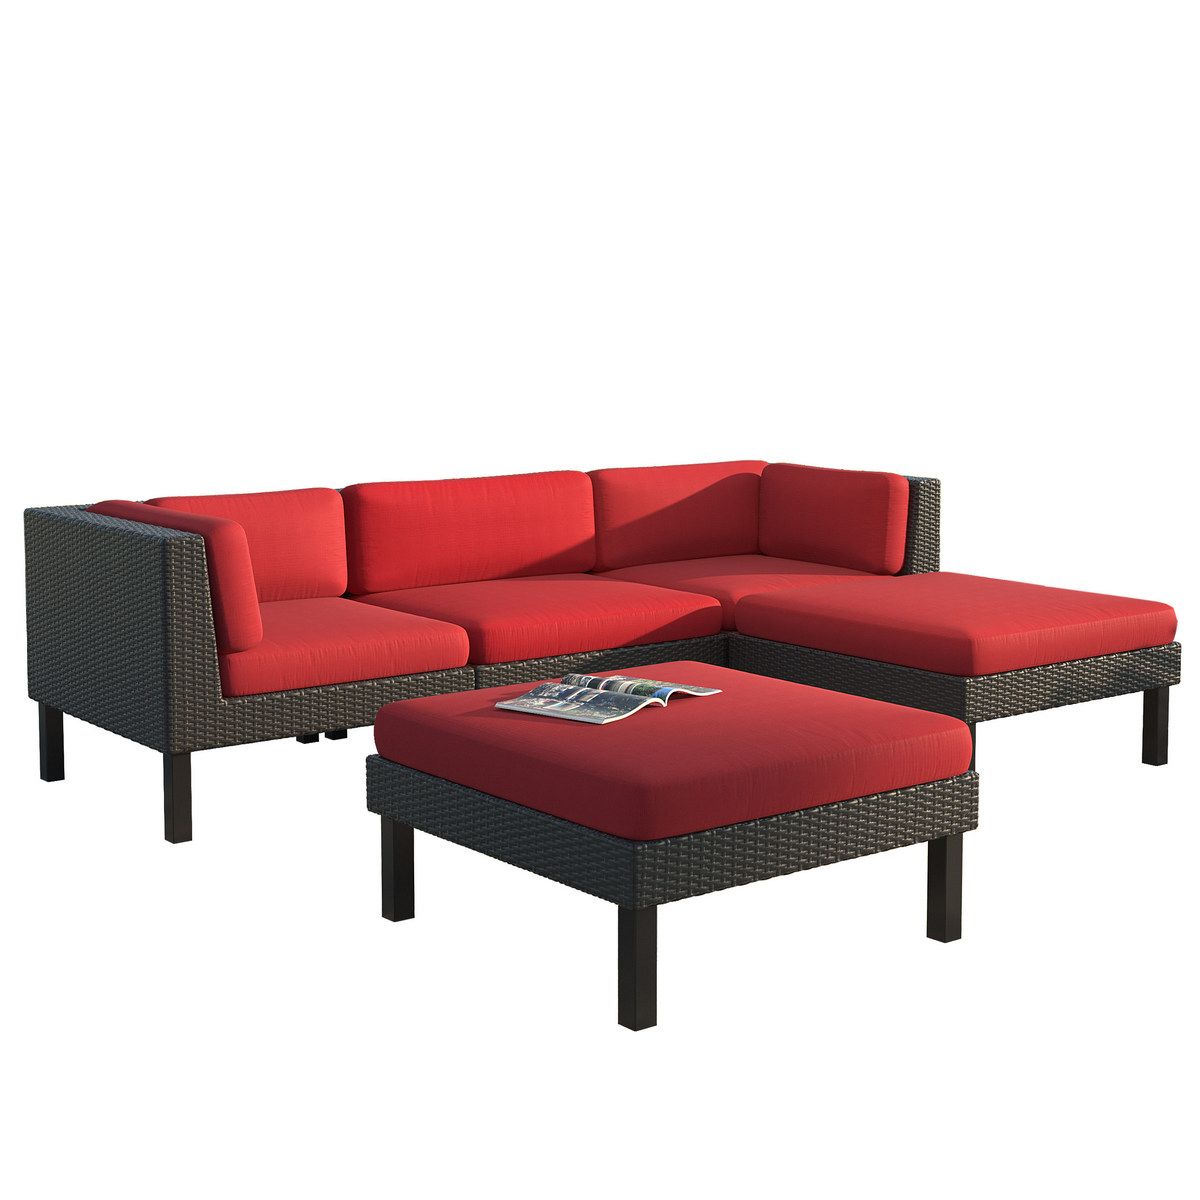 Corliving Sofa Chaise Lounge Patio Set